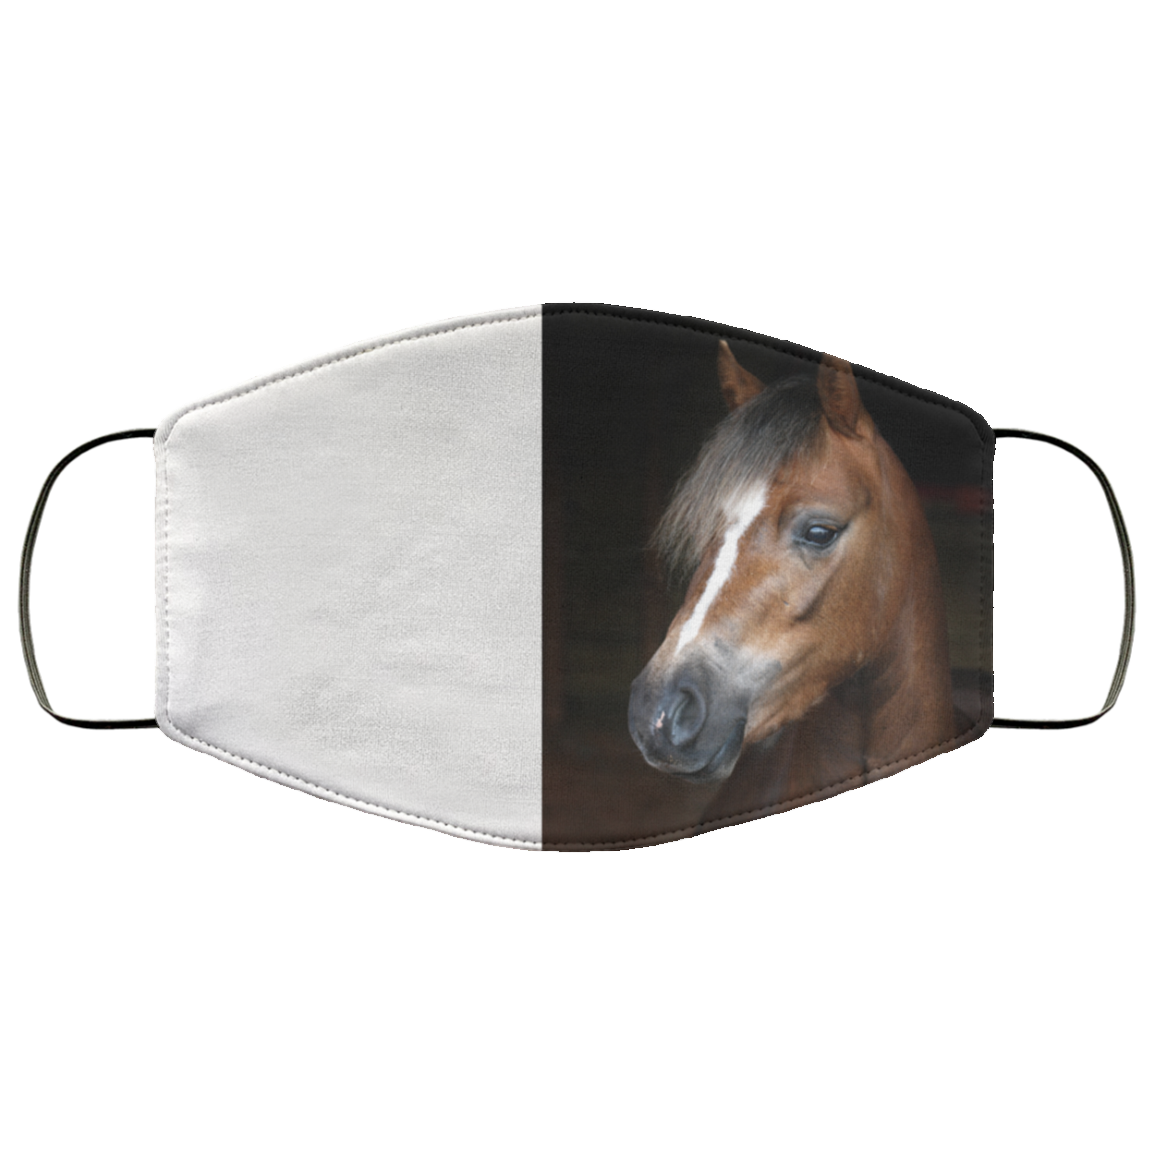 Horse-2 FMA Face Mask - OMG I Really Want That